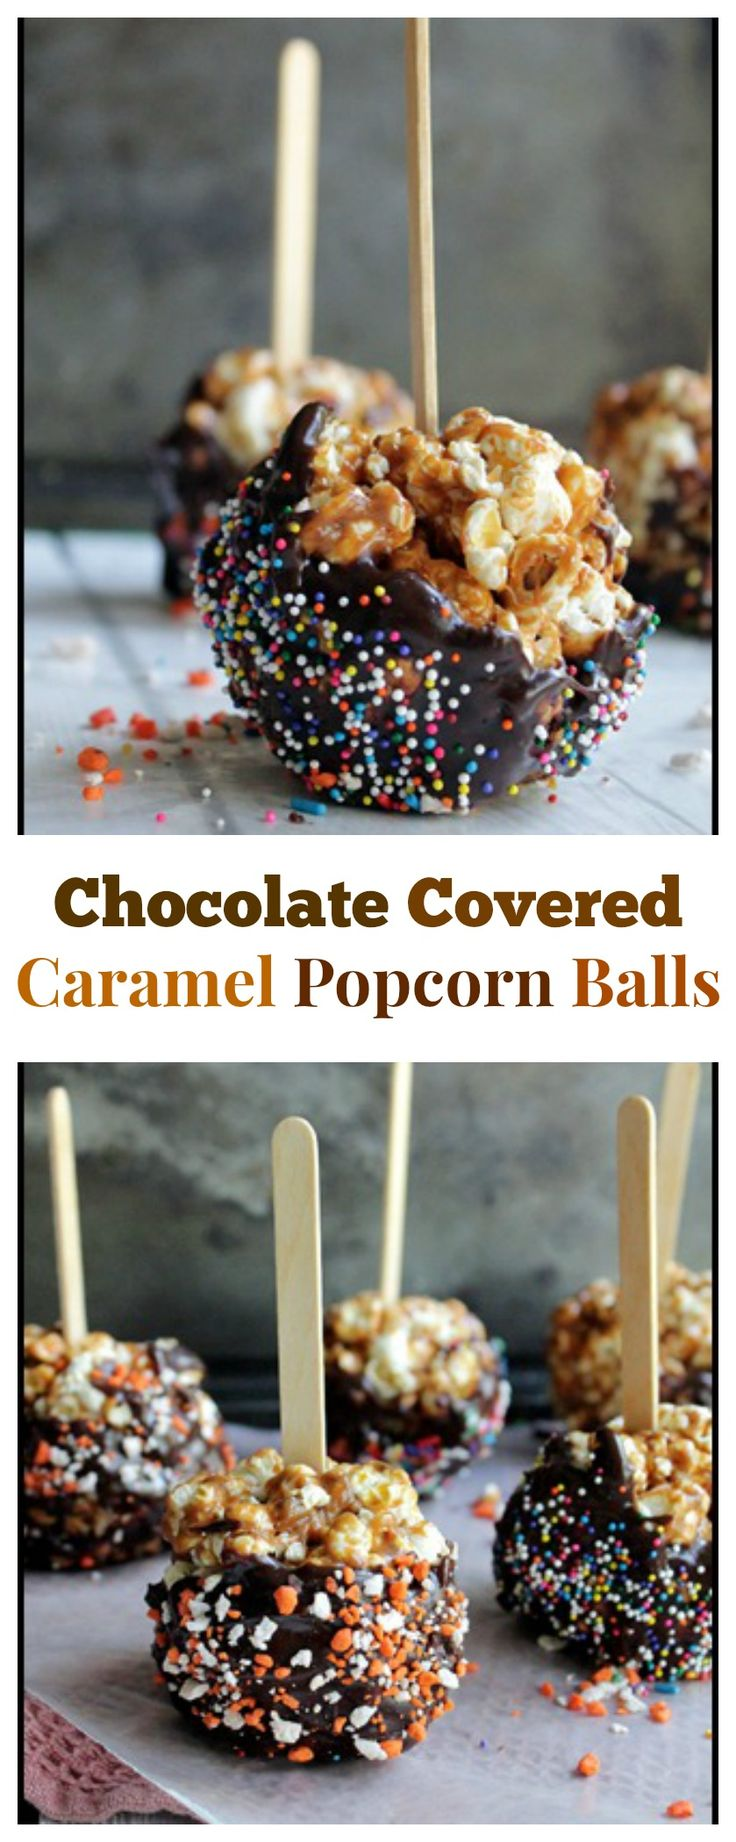 Chocolate Covered Caramel Popcorn Balls - Super easy to make and my kids love making them with me!